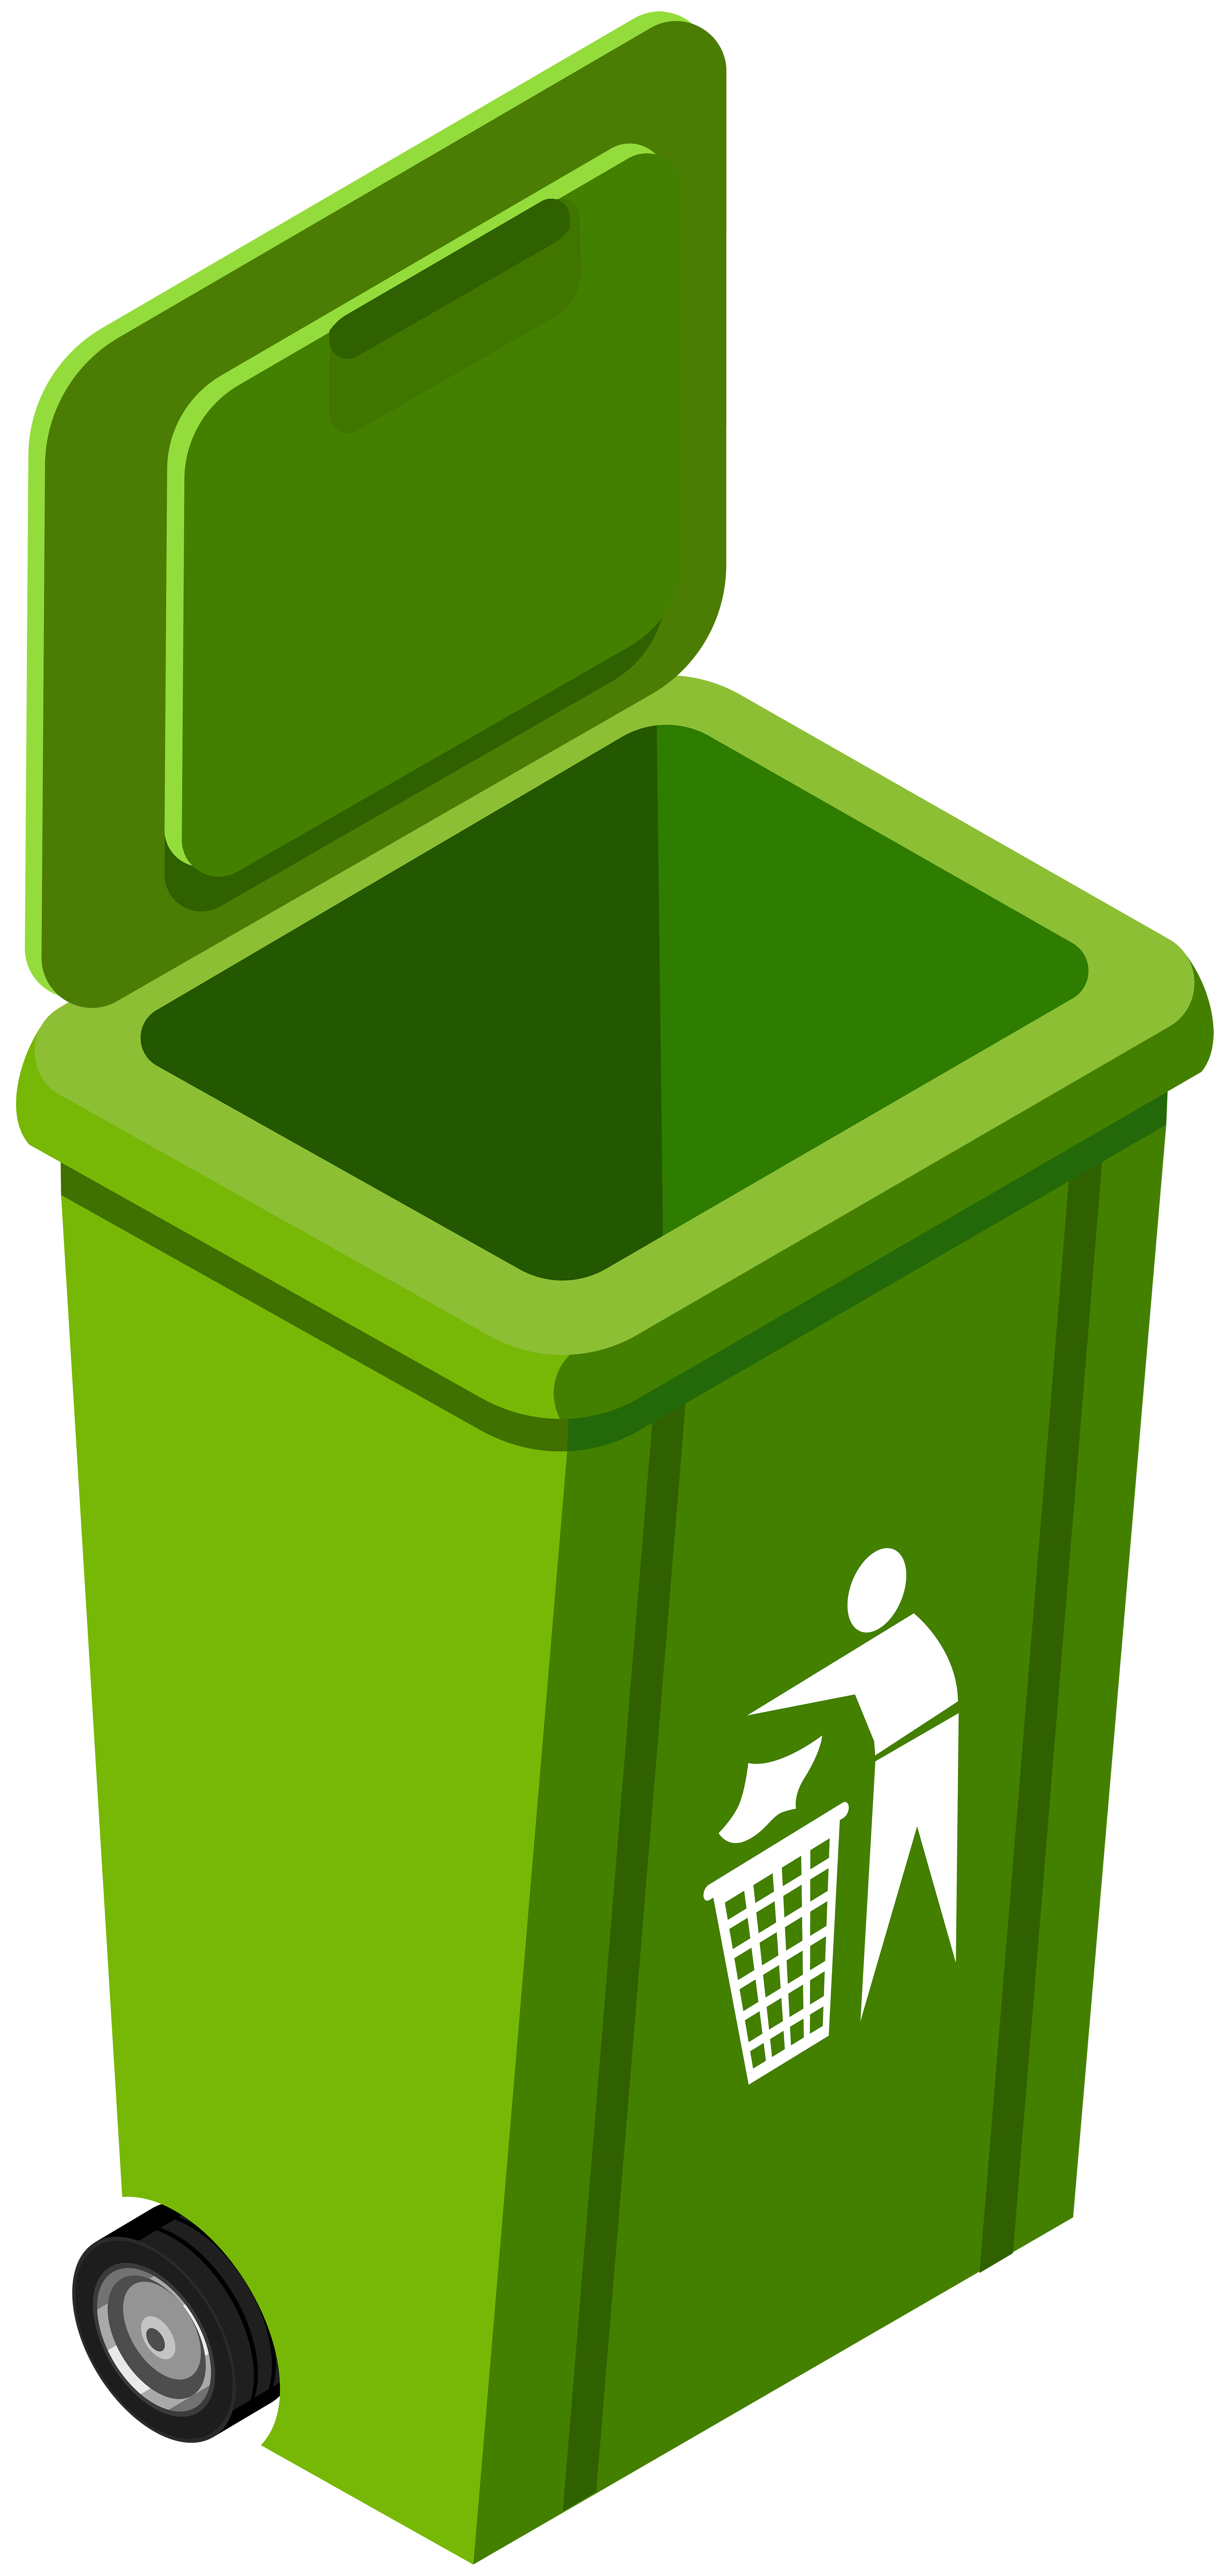 3810x8000 Green Trash Can Png Clip Art Image